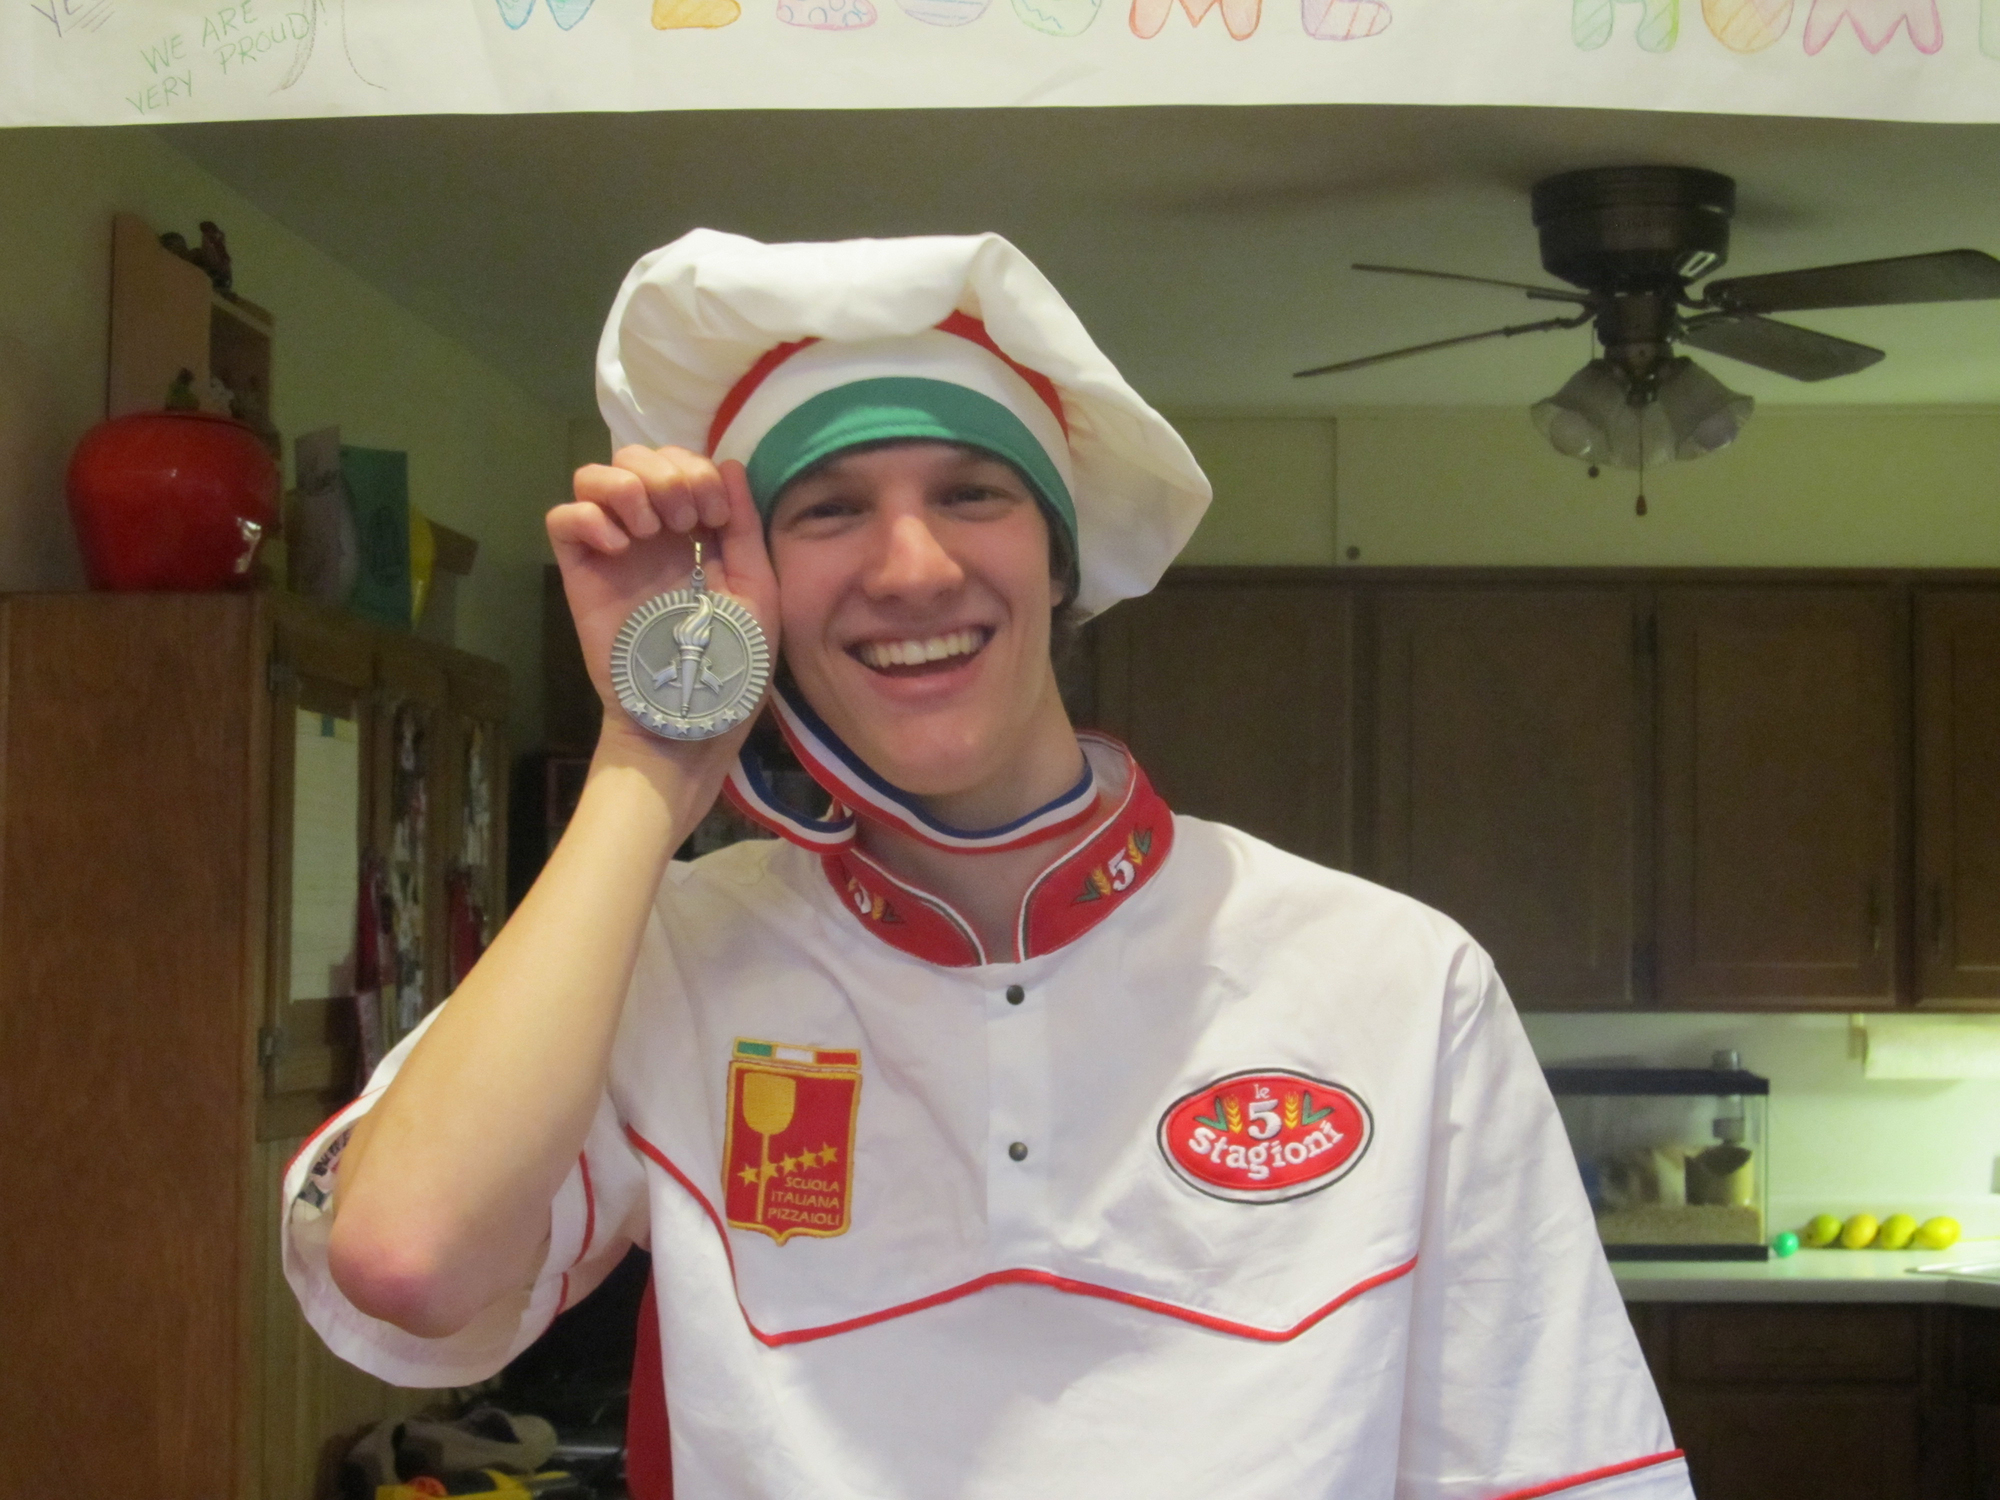 Nick Diesslin with the silver medal he received at the World Pizza Games in 2012.